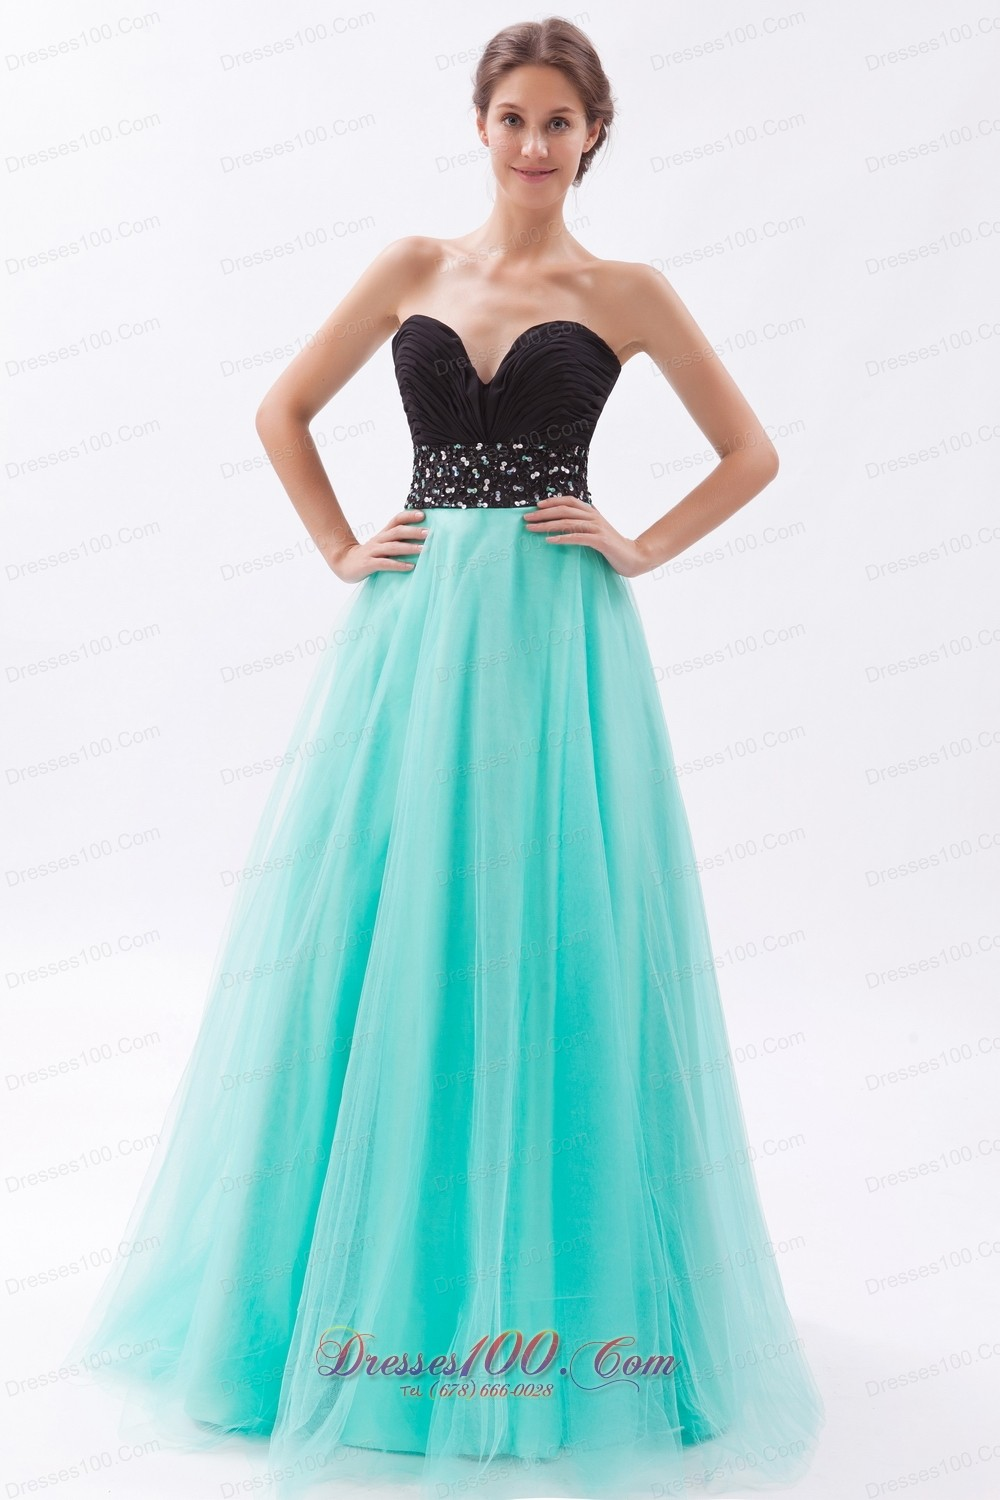 Pretty Cheap Prom Dresses | Cocktail Dresses 2016